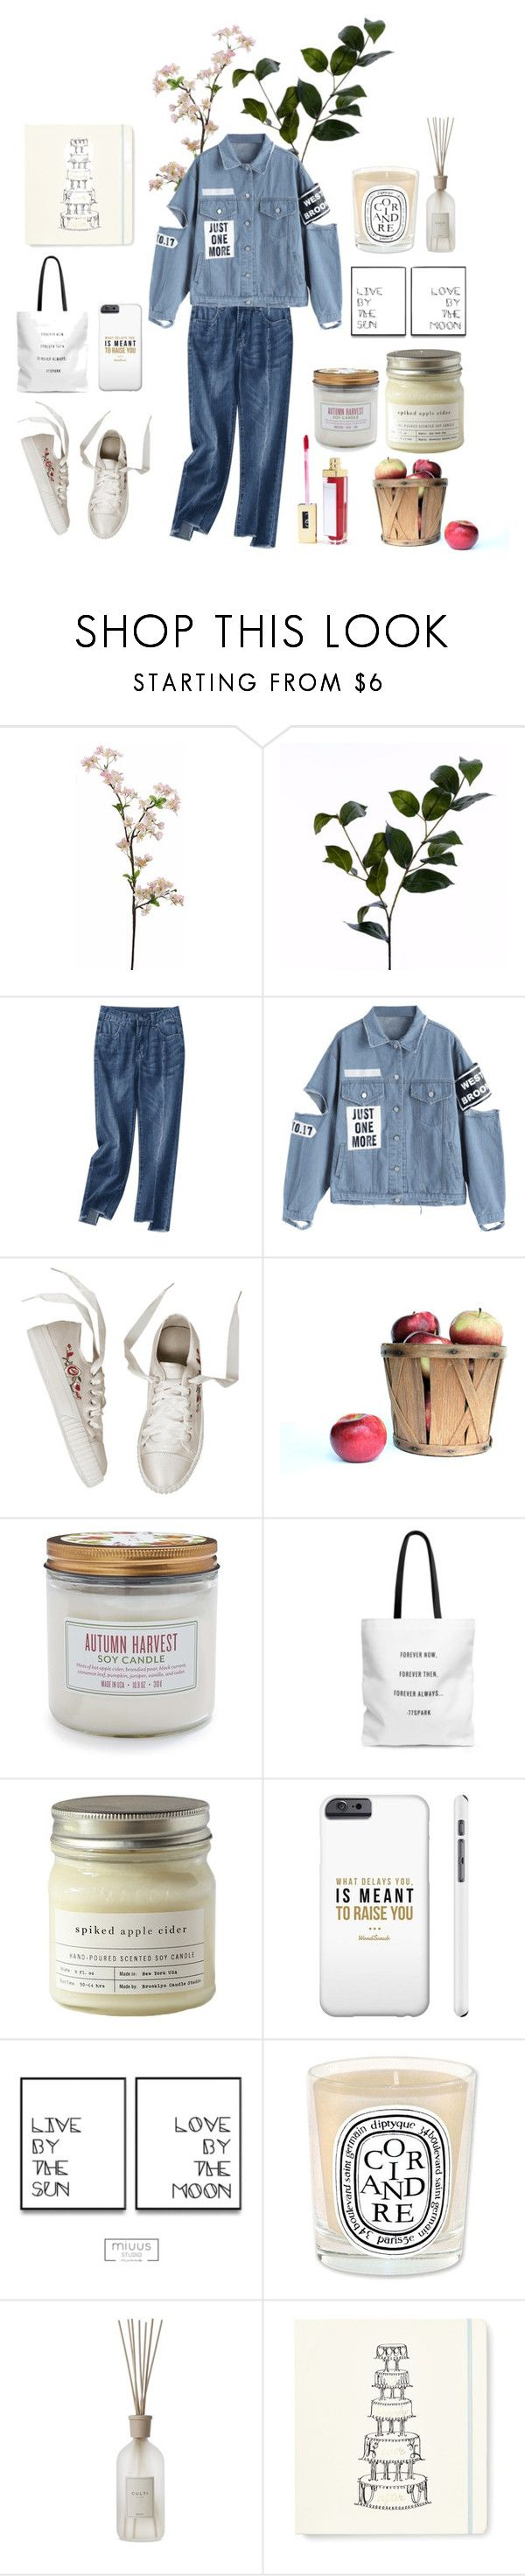 """""""justonemore"""" by vicococo ❤ liked on Polyvore featuring Wyld Home, Sur La Table, Brooklyn Candle Studio, Culti, Kate Spade, Gerard Cosmetics and applepicking"""